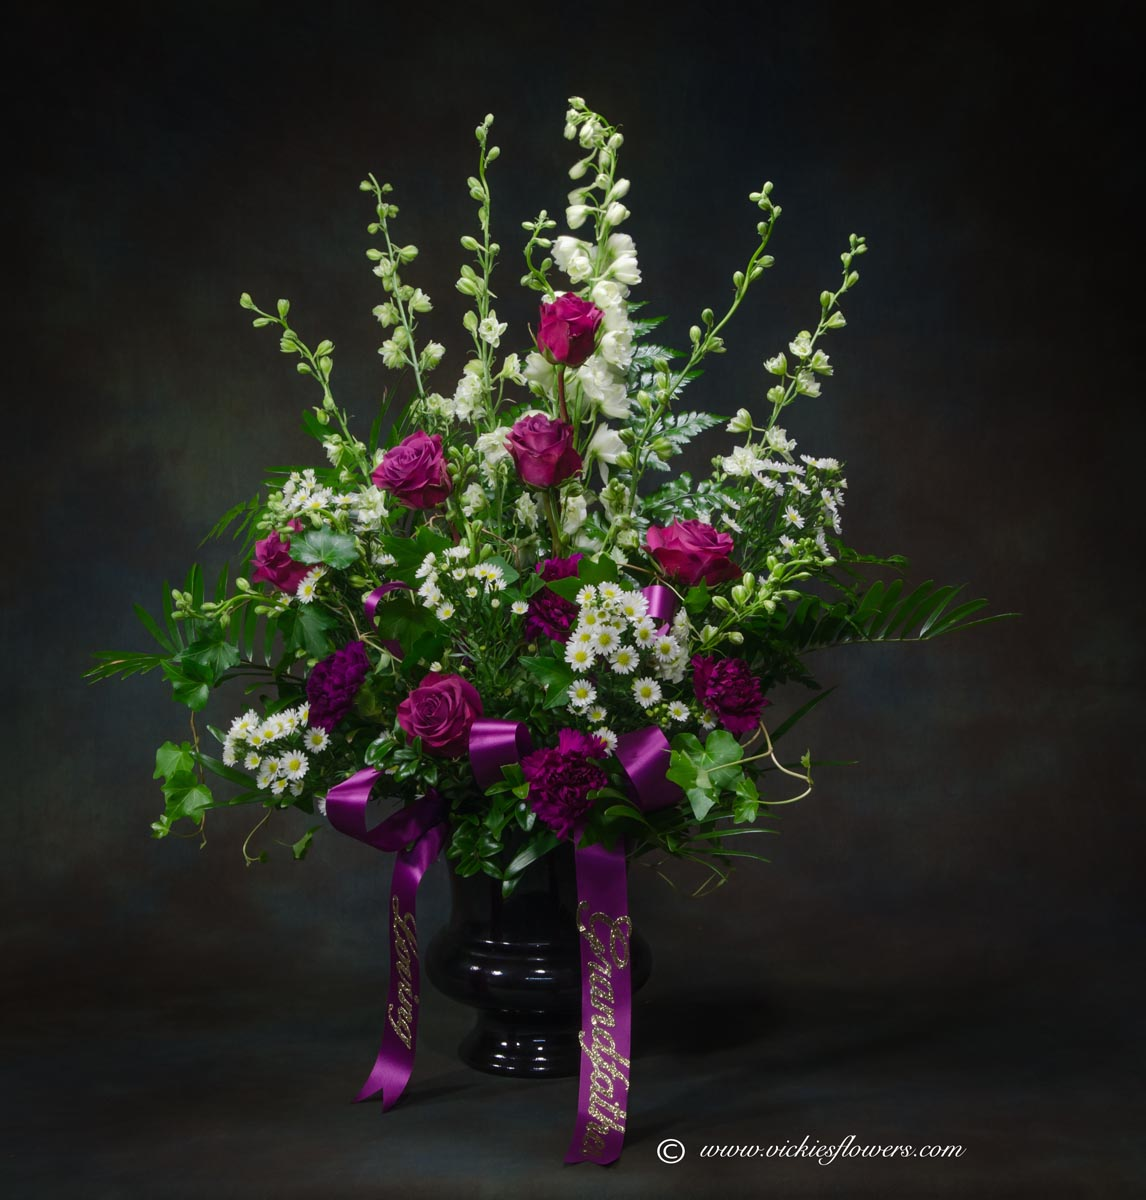 Funeral sympathy flowers archives vickies flowers brighton co funeral sympathy flowers 046 150 plus tax and delivery beautiful and elegant purple izmirmasajfo